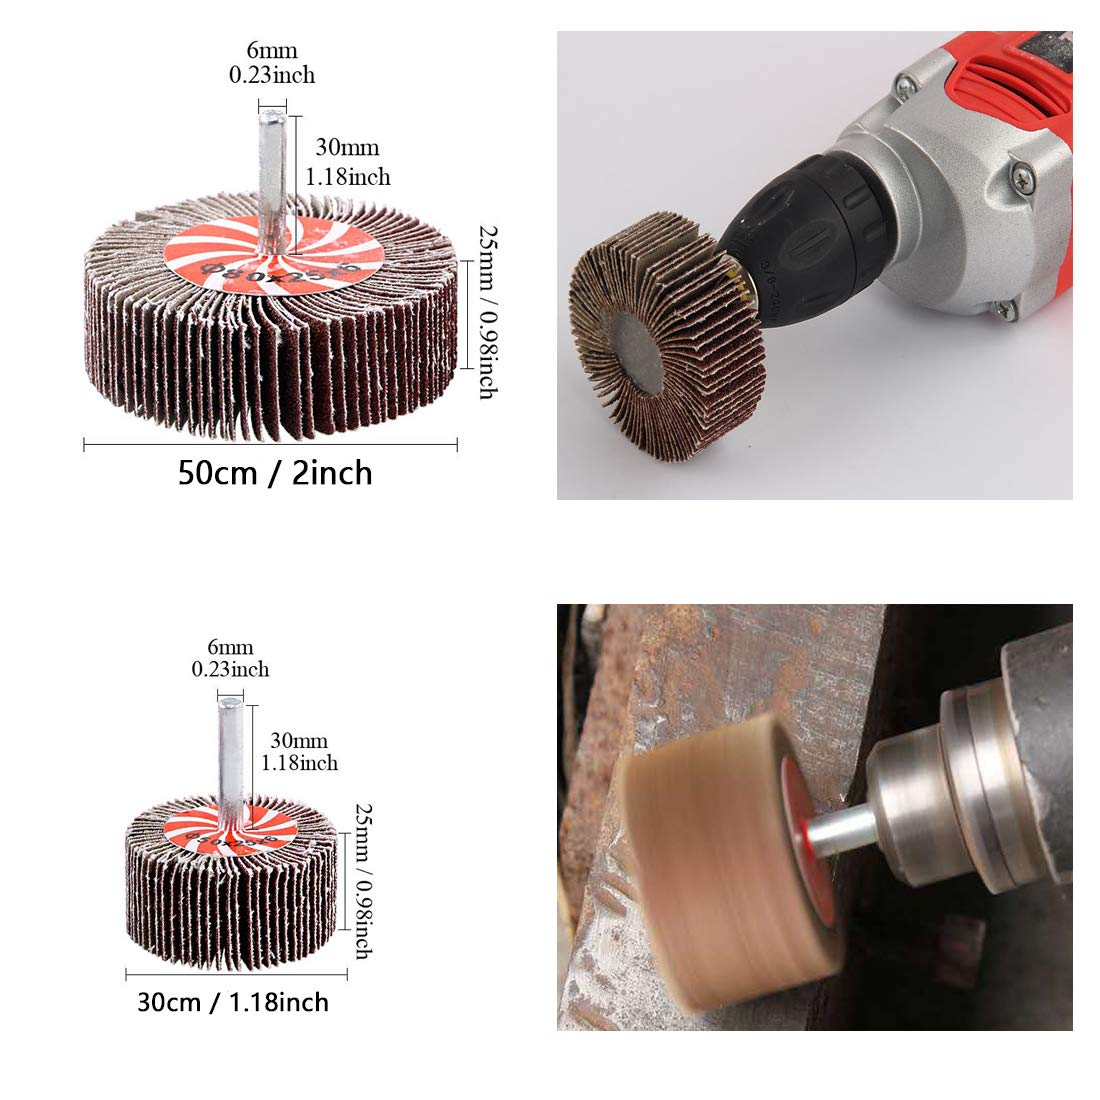 Esoca 13Pcs Wire Wheel Brush Knotted /& Crimped Wire Cup Wheels Brush /& Carbon Knot Wire Drill Brush Set with 1//4-Inch Shank For Rust Removal Corrosion and Scrub Surfaces